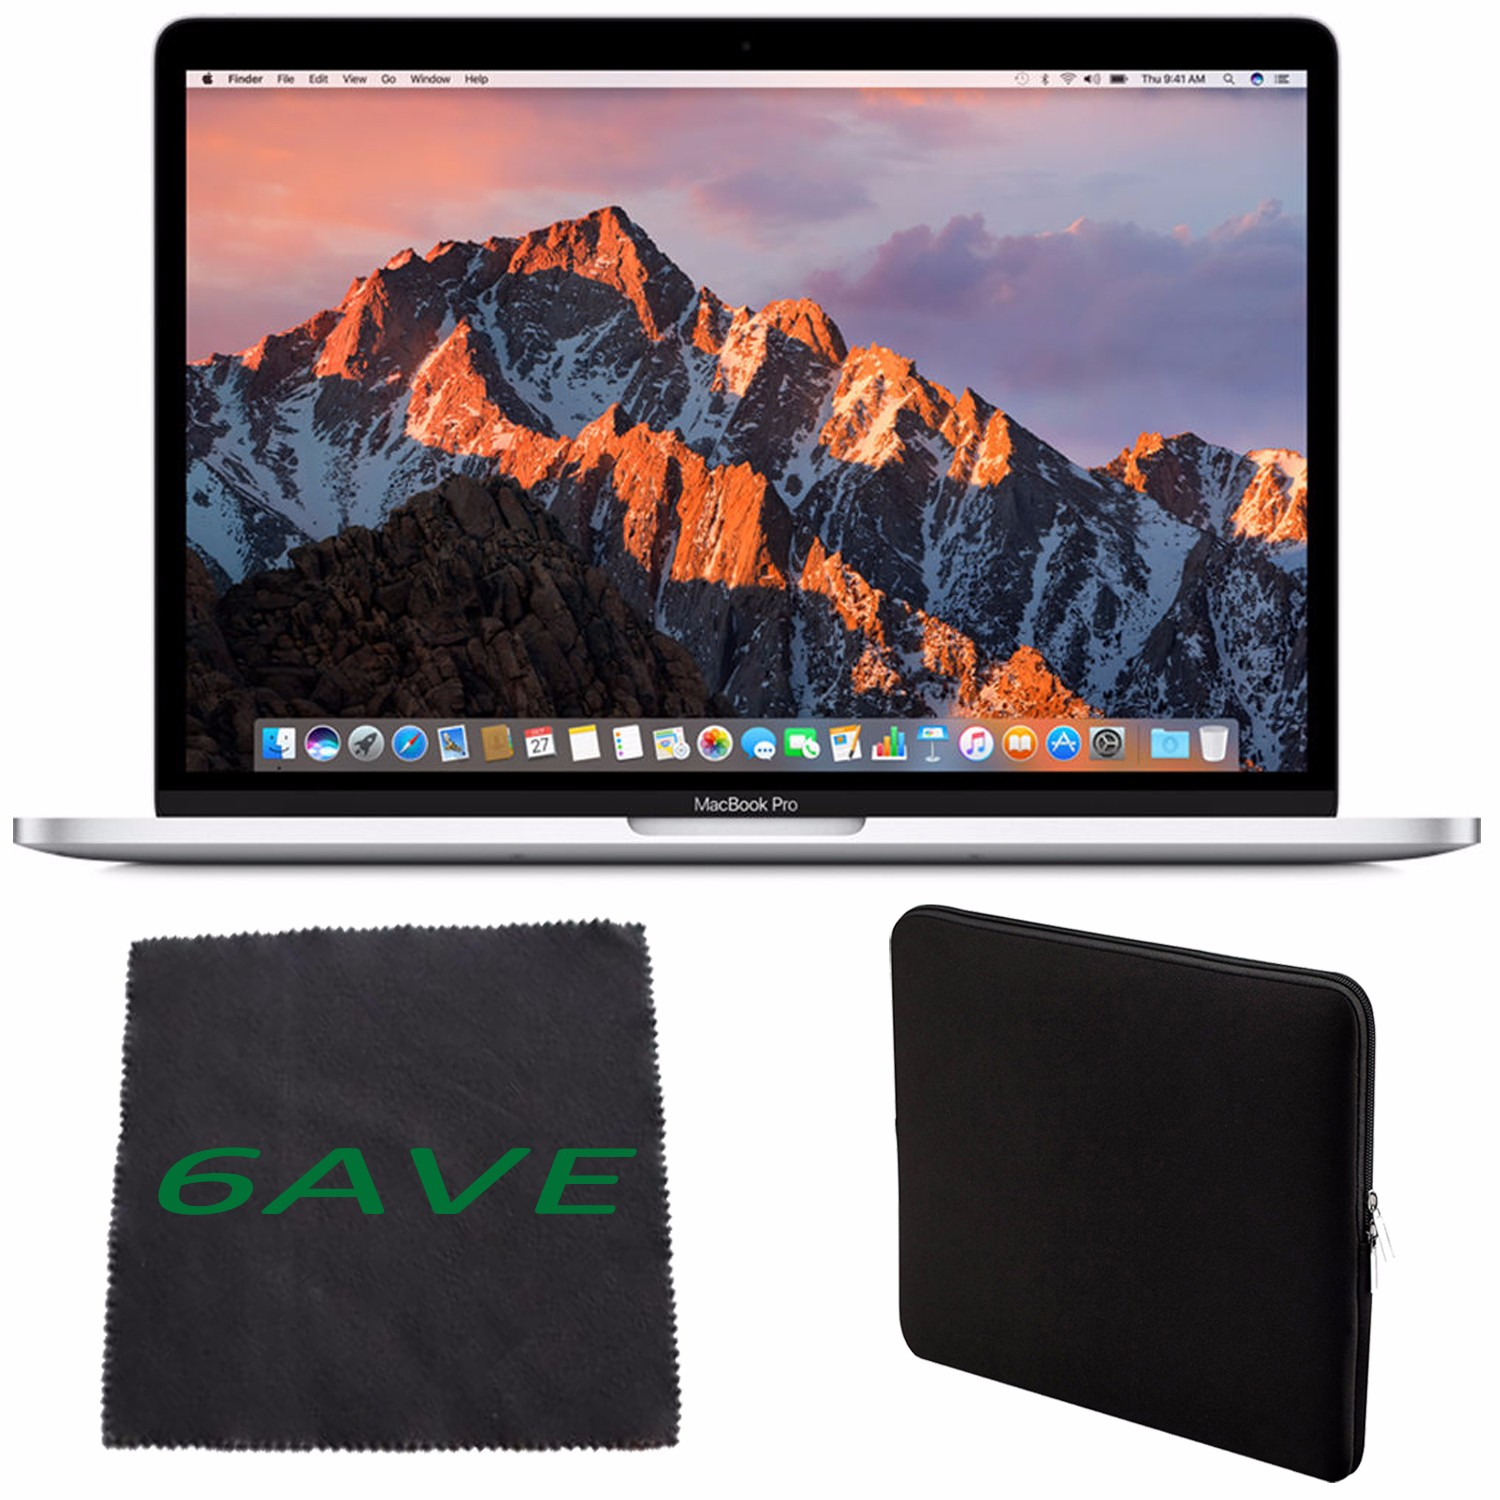 Apple MacBook Pro MNQG2LL/A 13-inch Laptop with Touch Bar (2.9GHz dual-core Intel Core i5, 512GB Retina Display), Silver + Padded Case For Macbook + MicroFiber Cloth Bundle